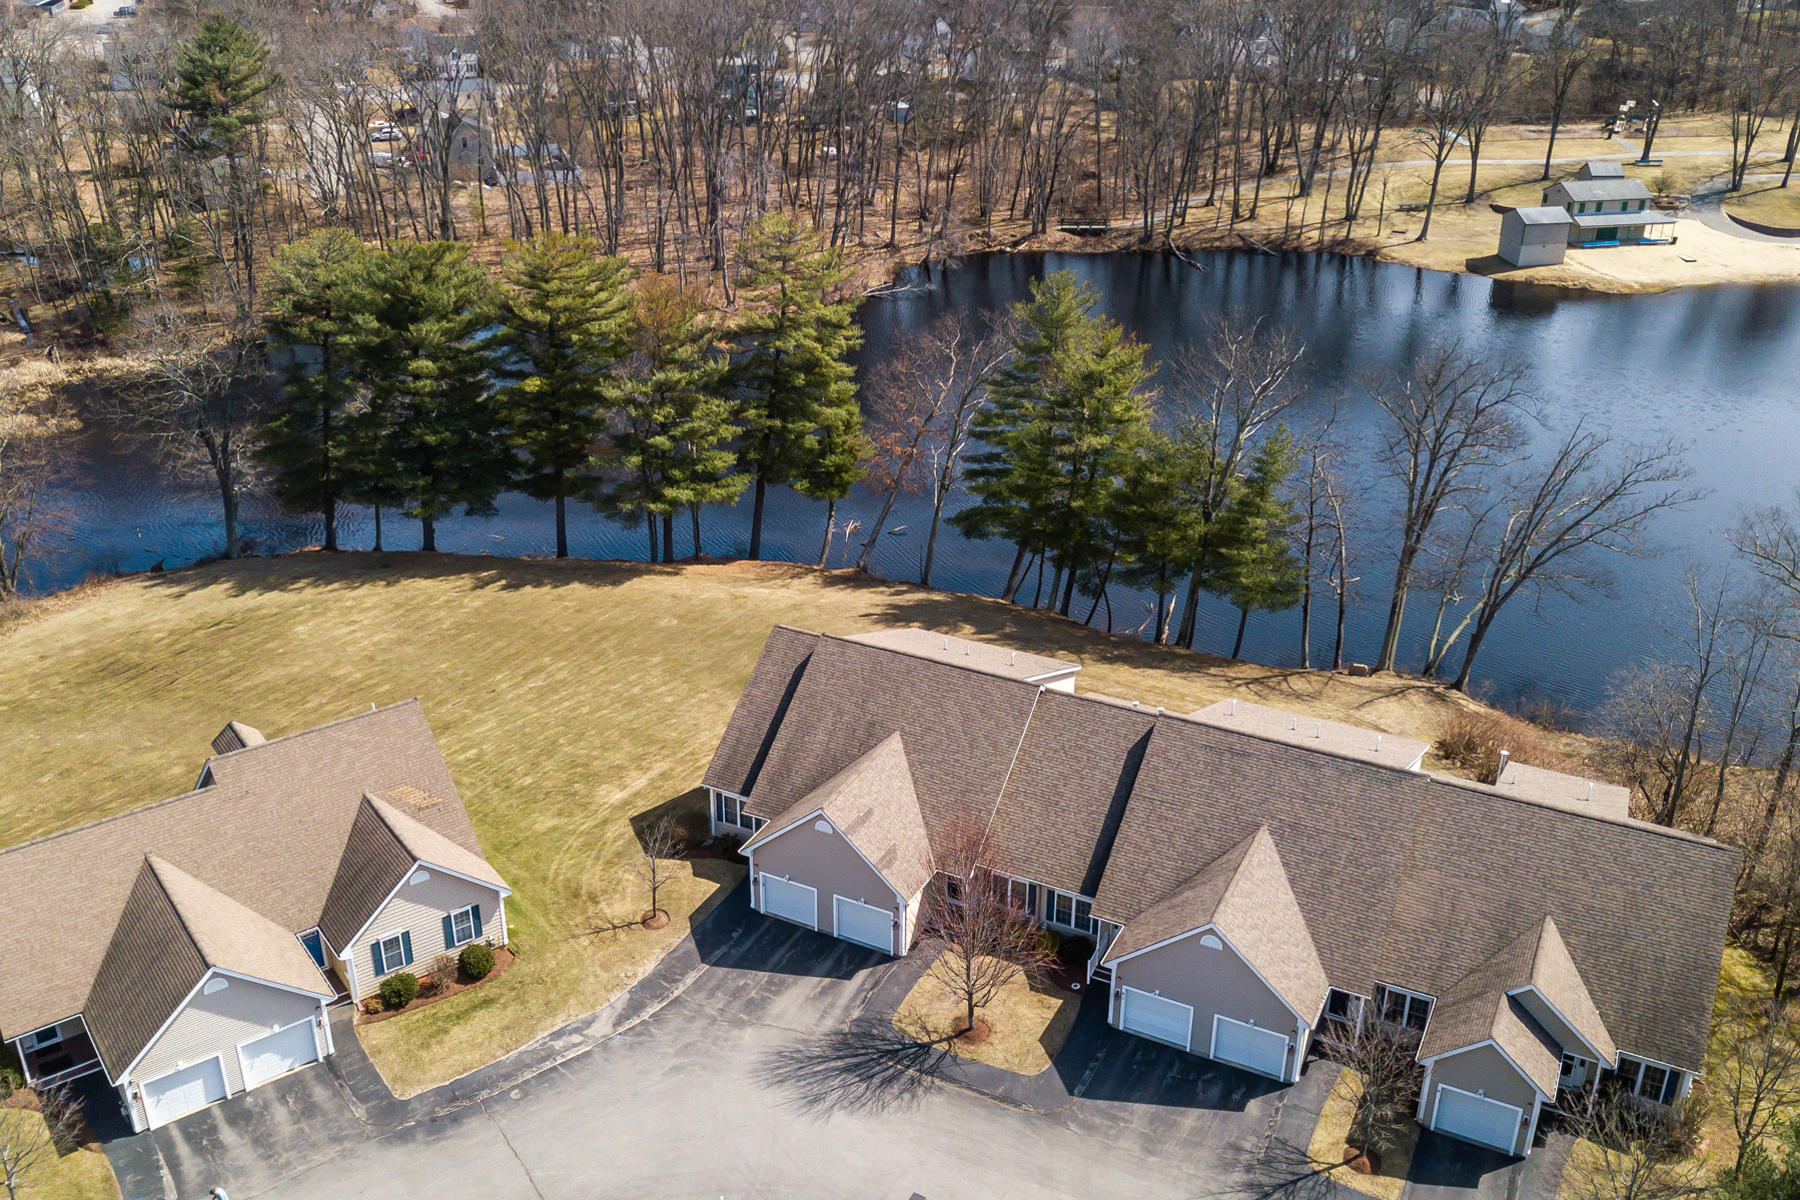 Single Family Home for Sale at 71 N High Street 5, Derry 71 N High St 5 Derry, New Hampshire 03038 United States